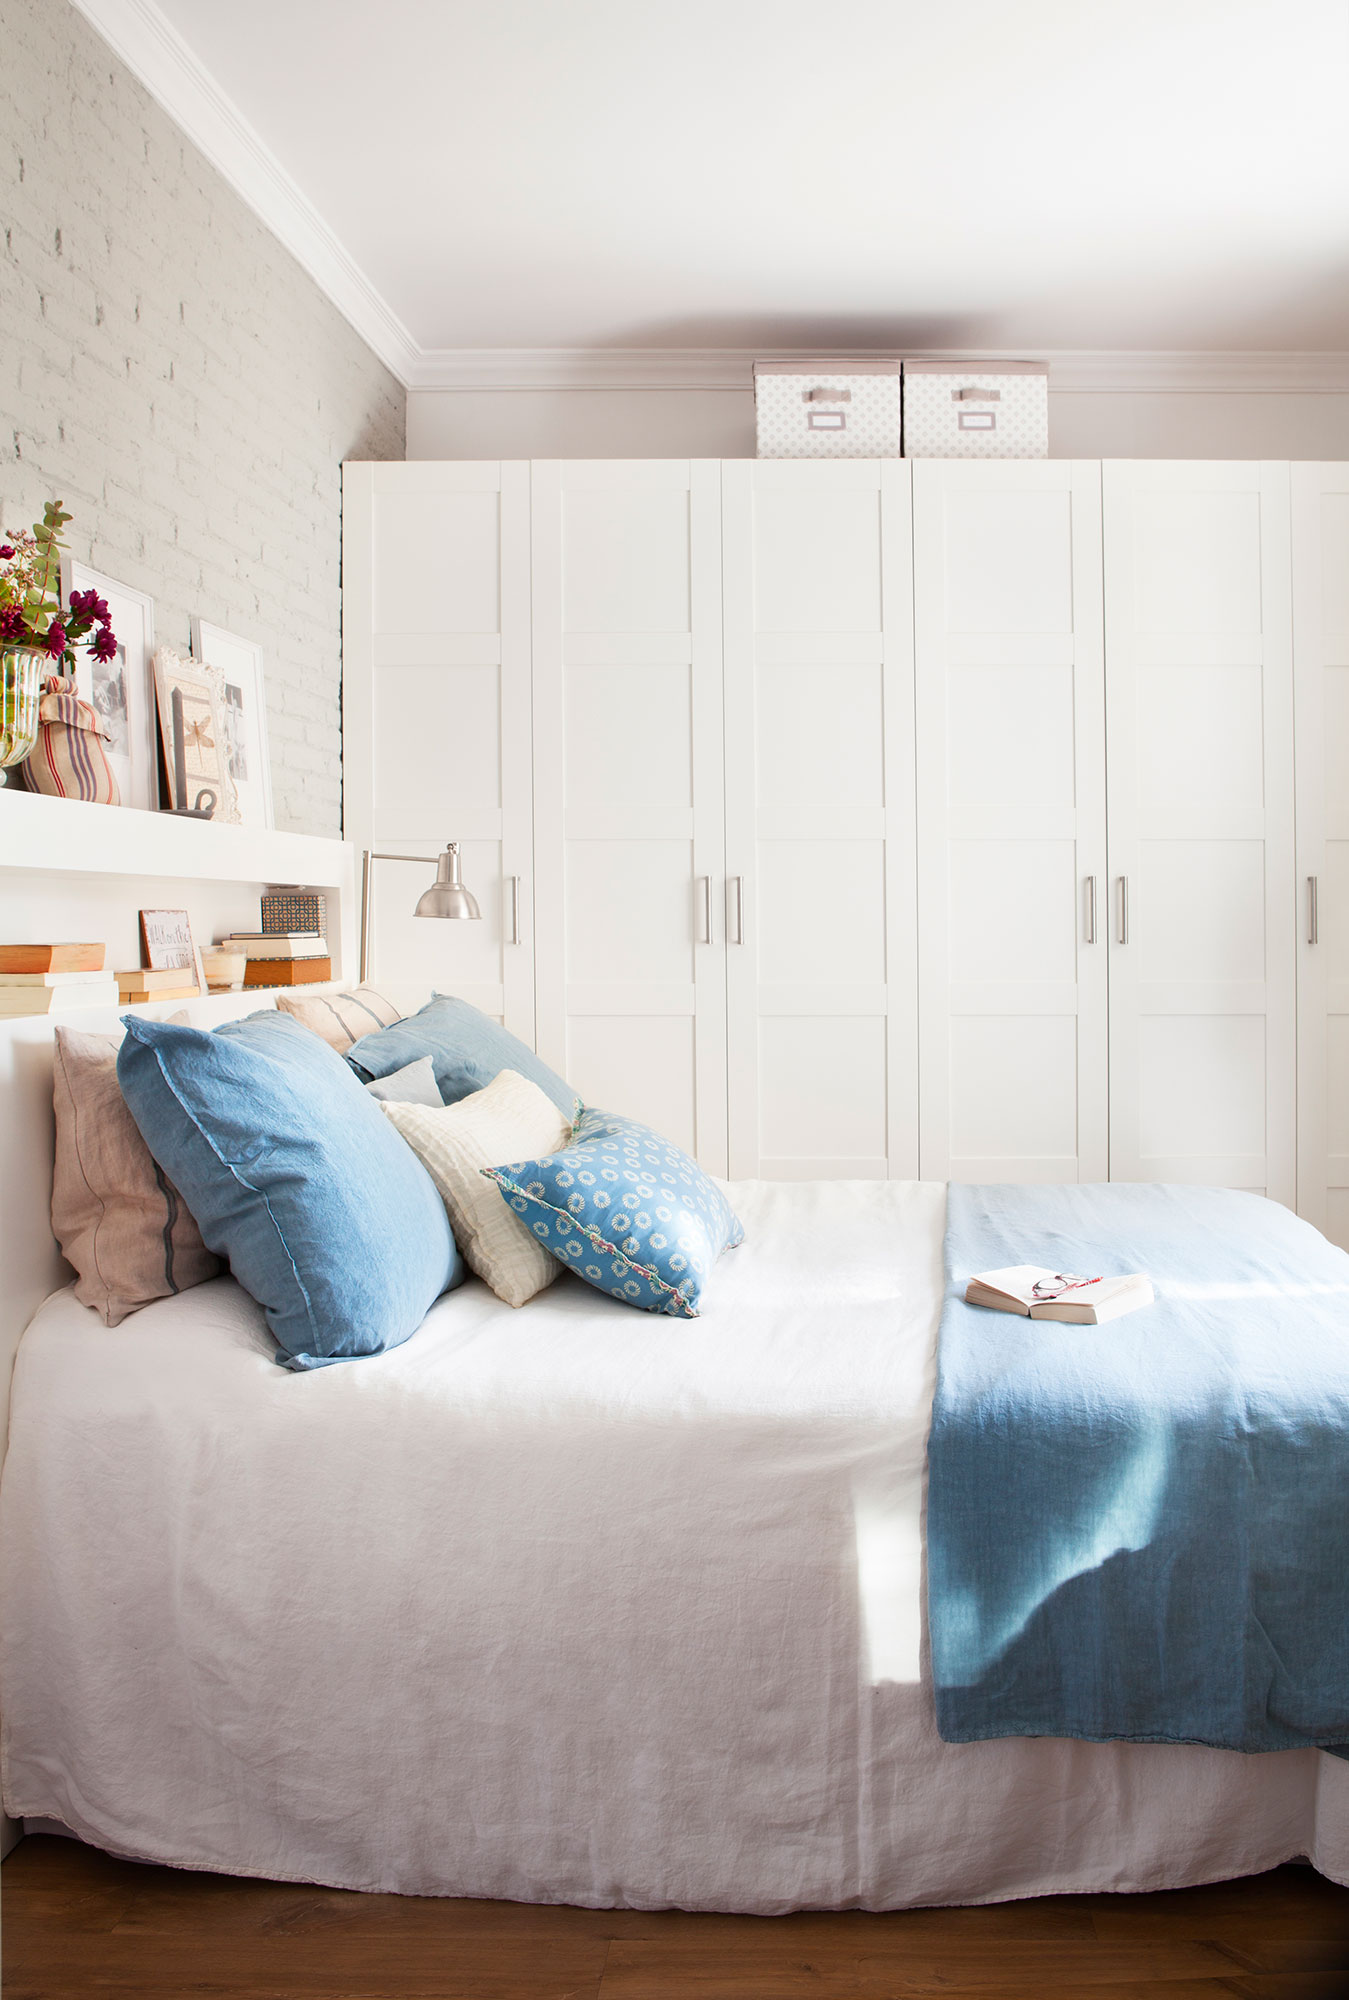 Compartir piso 10 ideas low cost para decorar tu dormitorio - Dormitorio blanco y madera ...